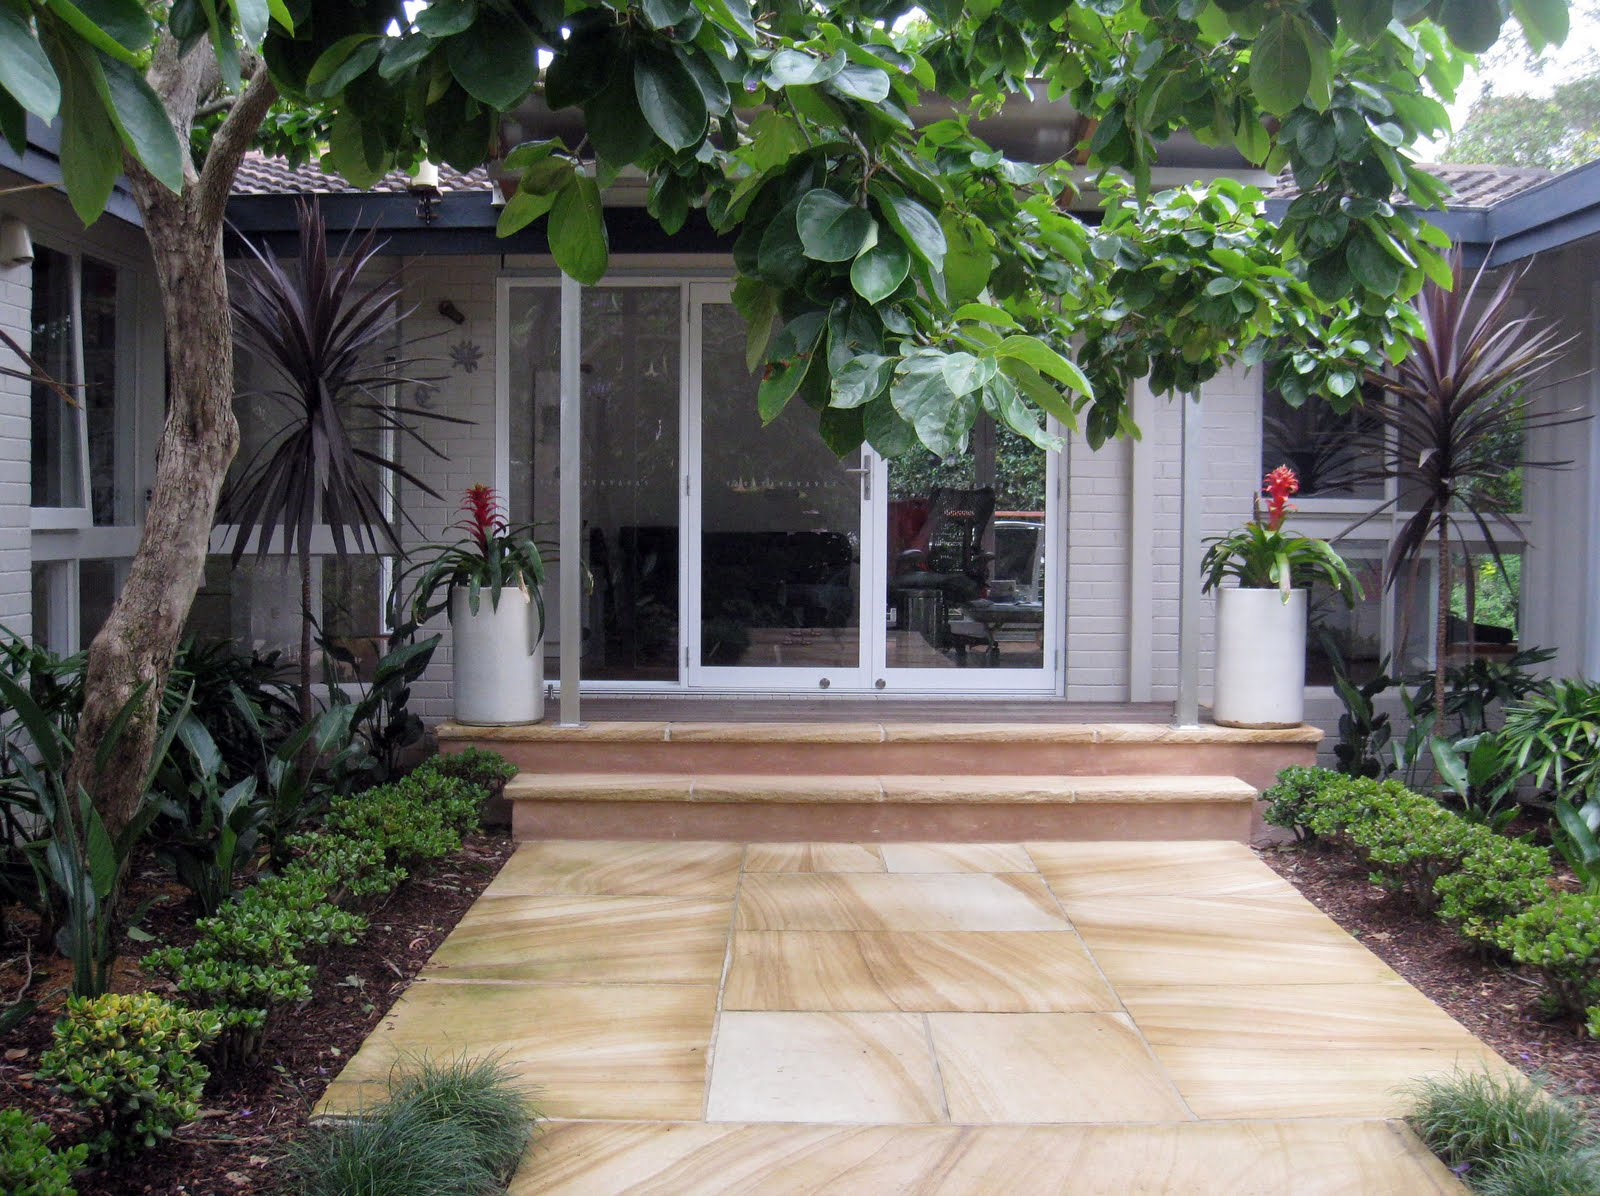 house entrance garden ideas photo - 2